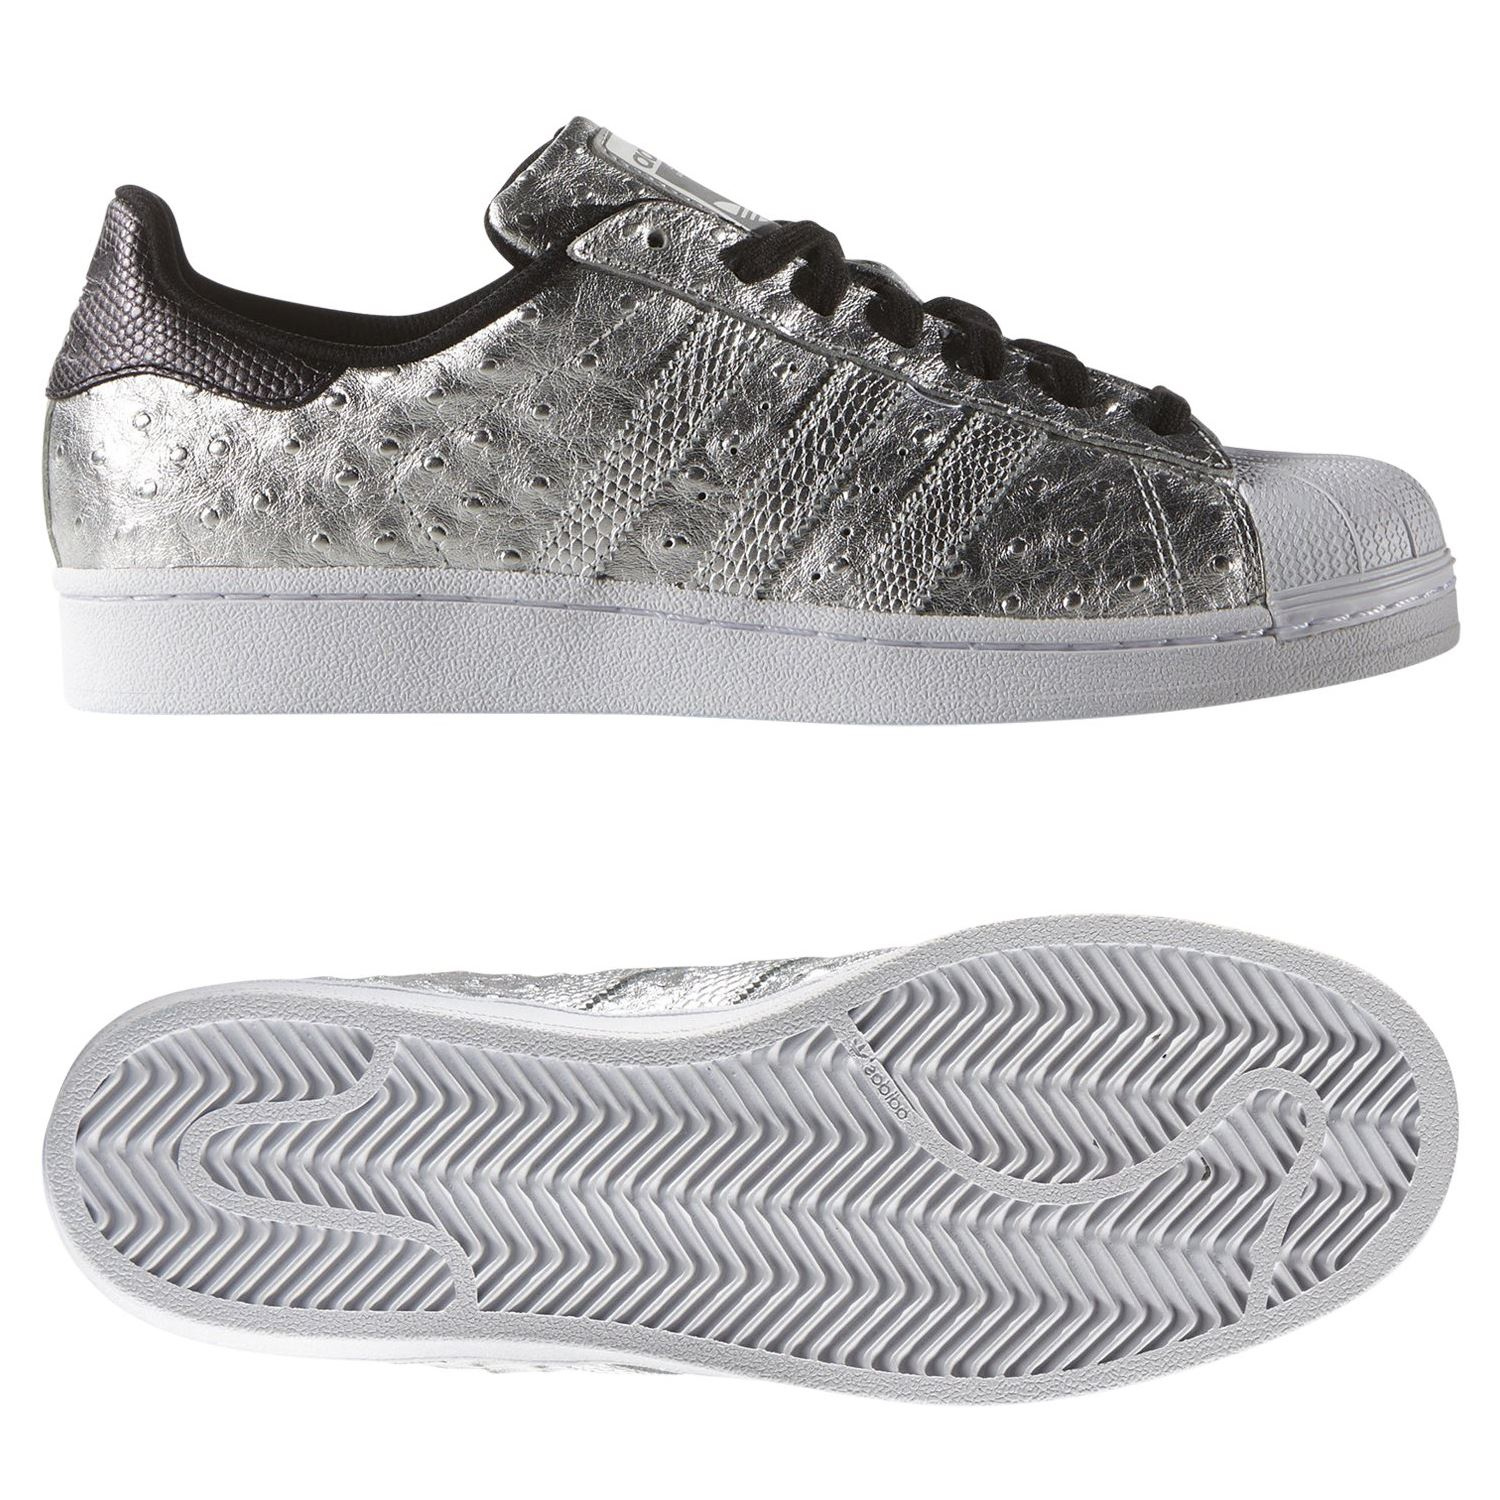 competitive price e81ce e5a97 adidas ORIGINALS MEN S SUPERSTAR TRAINERS SILVER SHOES SNEAKERS RARE  SNAKESKIN. Item Description. The adidas Superstar shoe stepped onto  basketball courts ...